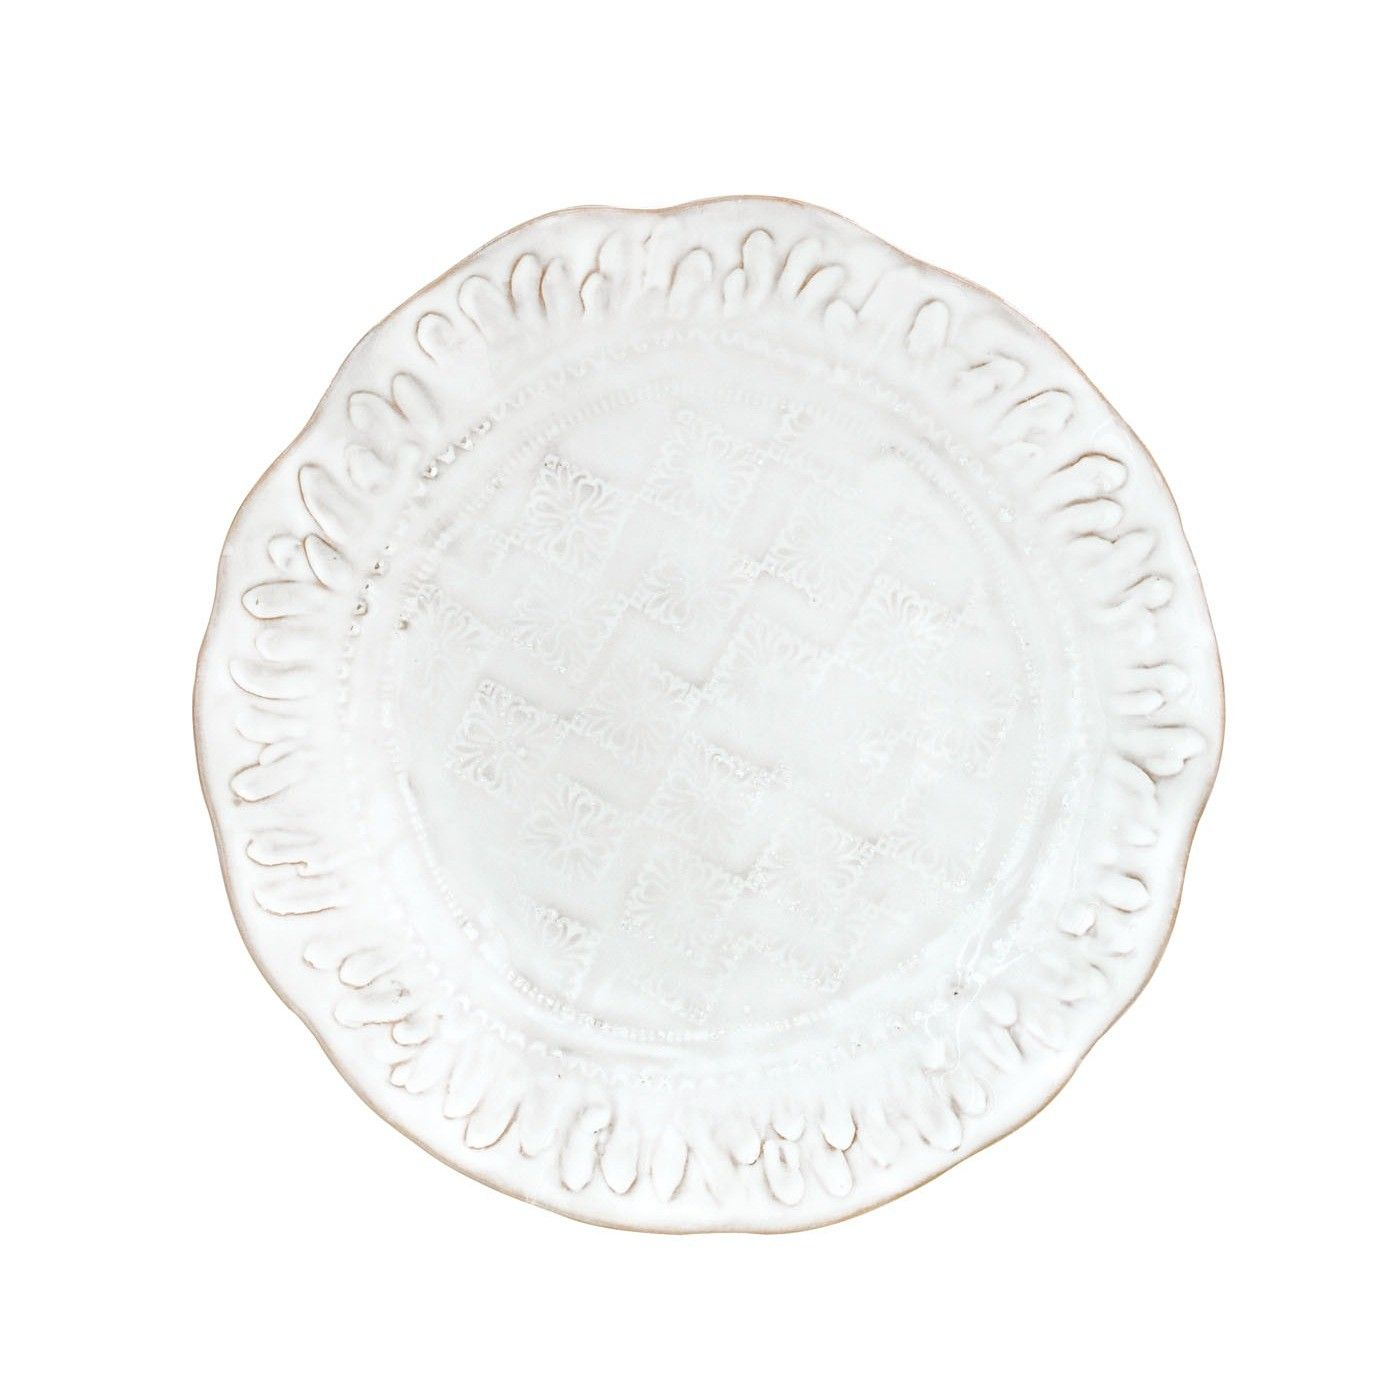 Ancient ornament rolls are used to create the intricate details on the front and back of each Bellezza White Salad Plate. Make your table one of vintage elegance.